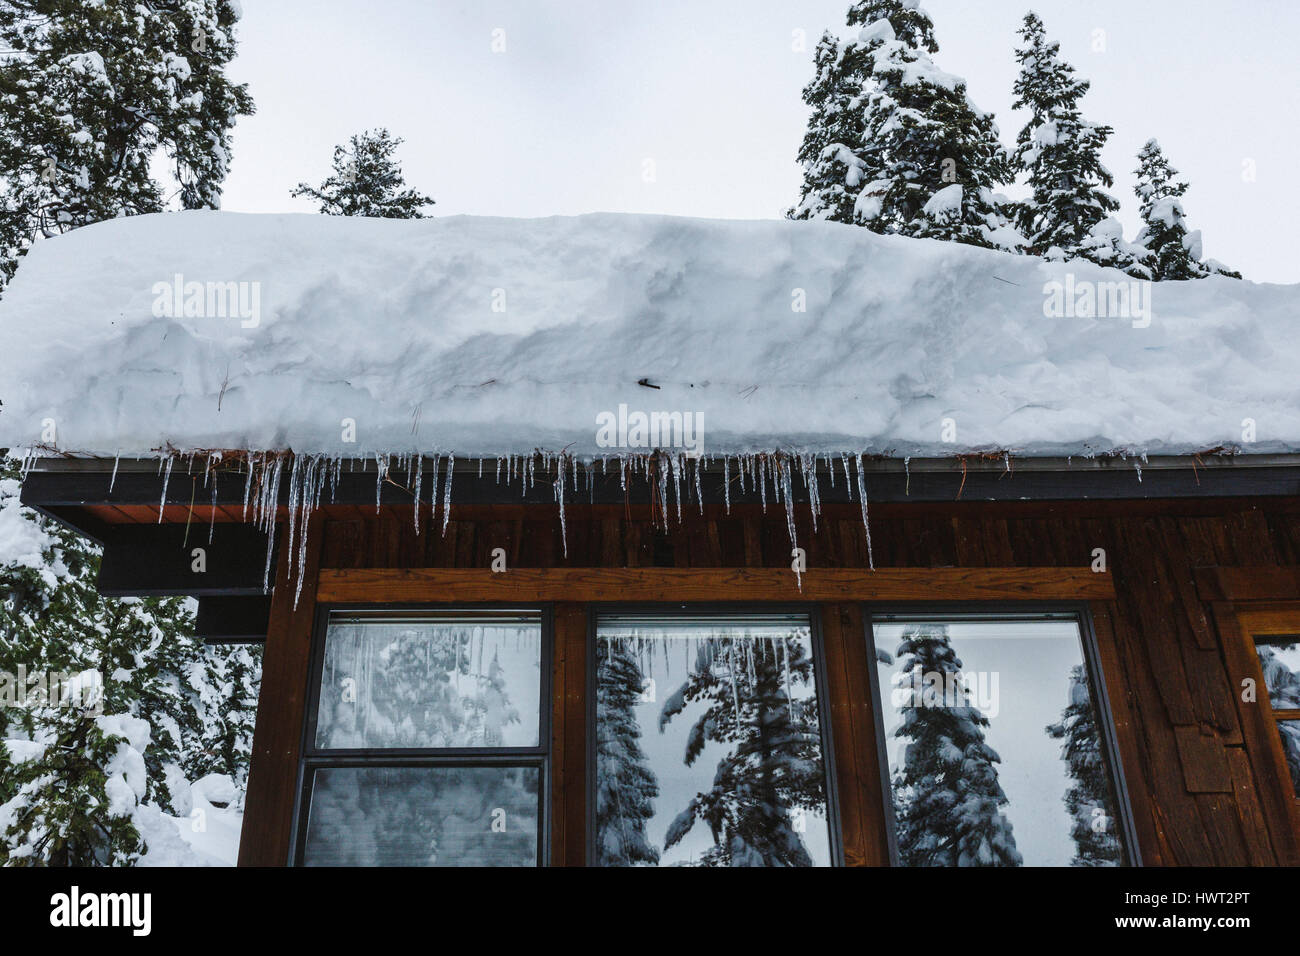 Low angle view of snow on house roof with icicles - Stock Image